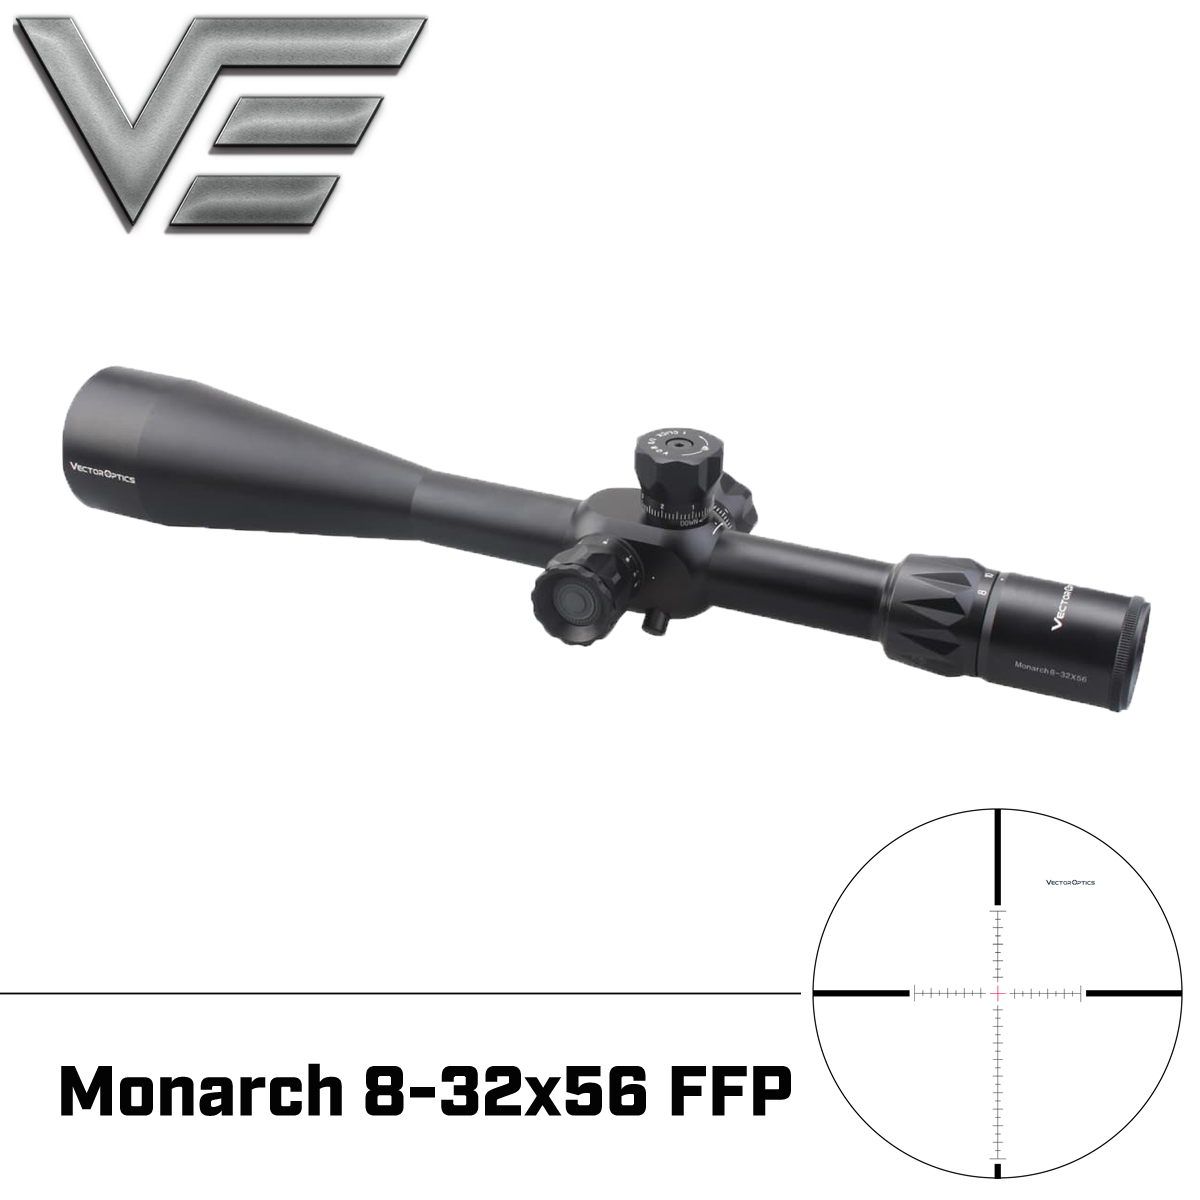 Vector Optics Monarch 8-32x56 FFP Tactical Riflescope 1/8 MOA Mildot Reticle With Mount & Sunshade Rifle Scope For Shooting